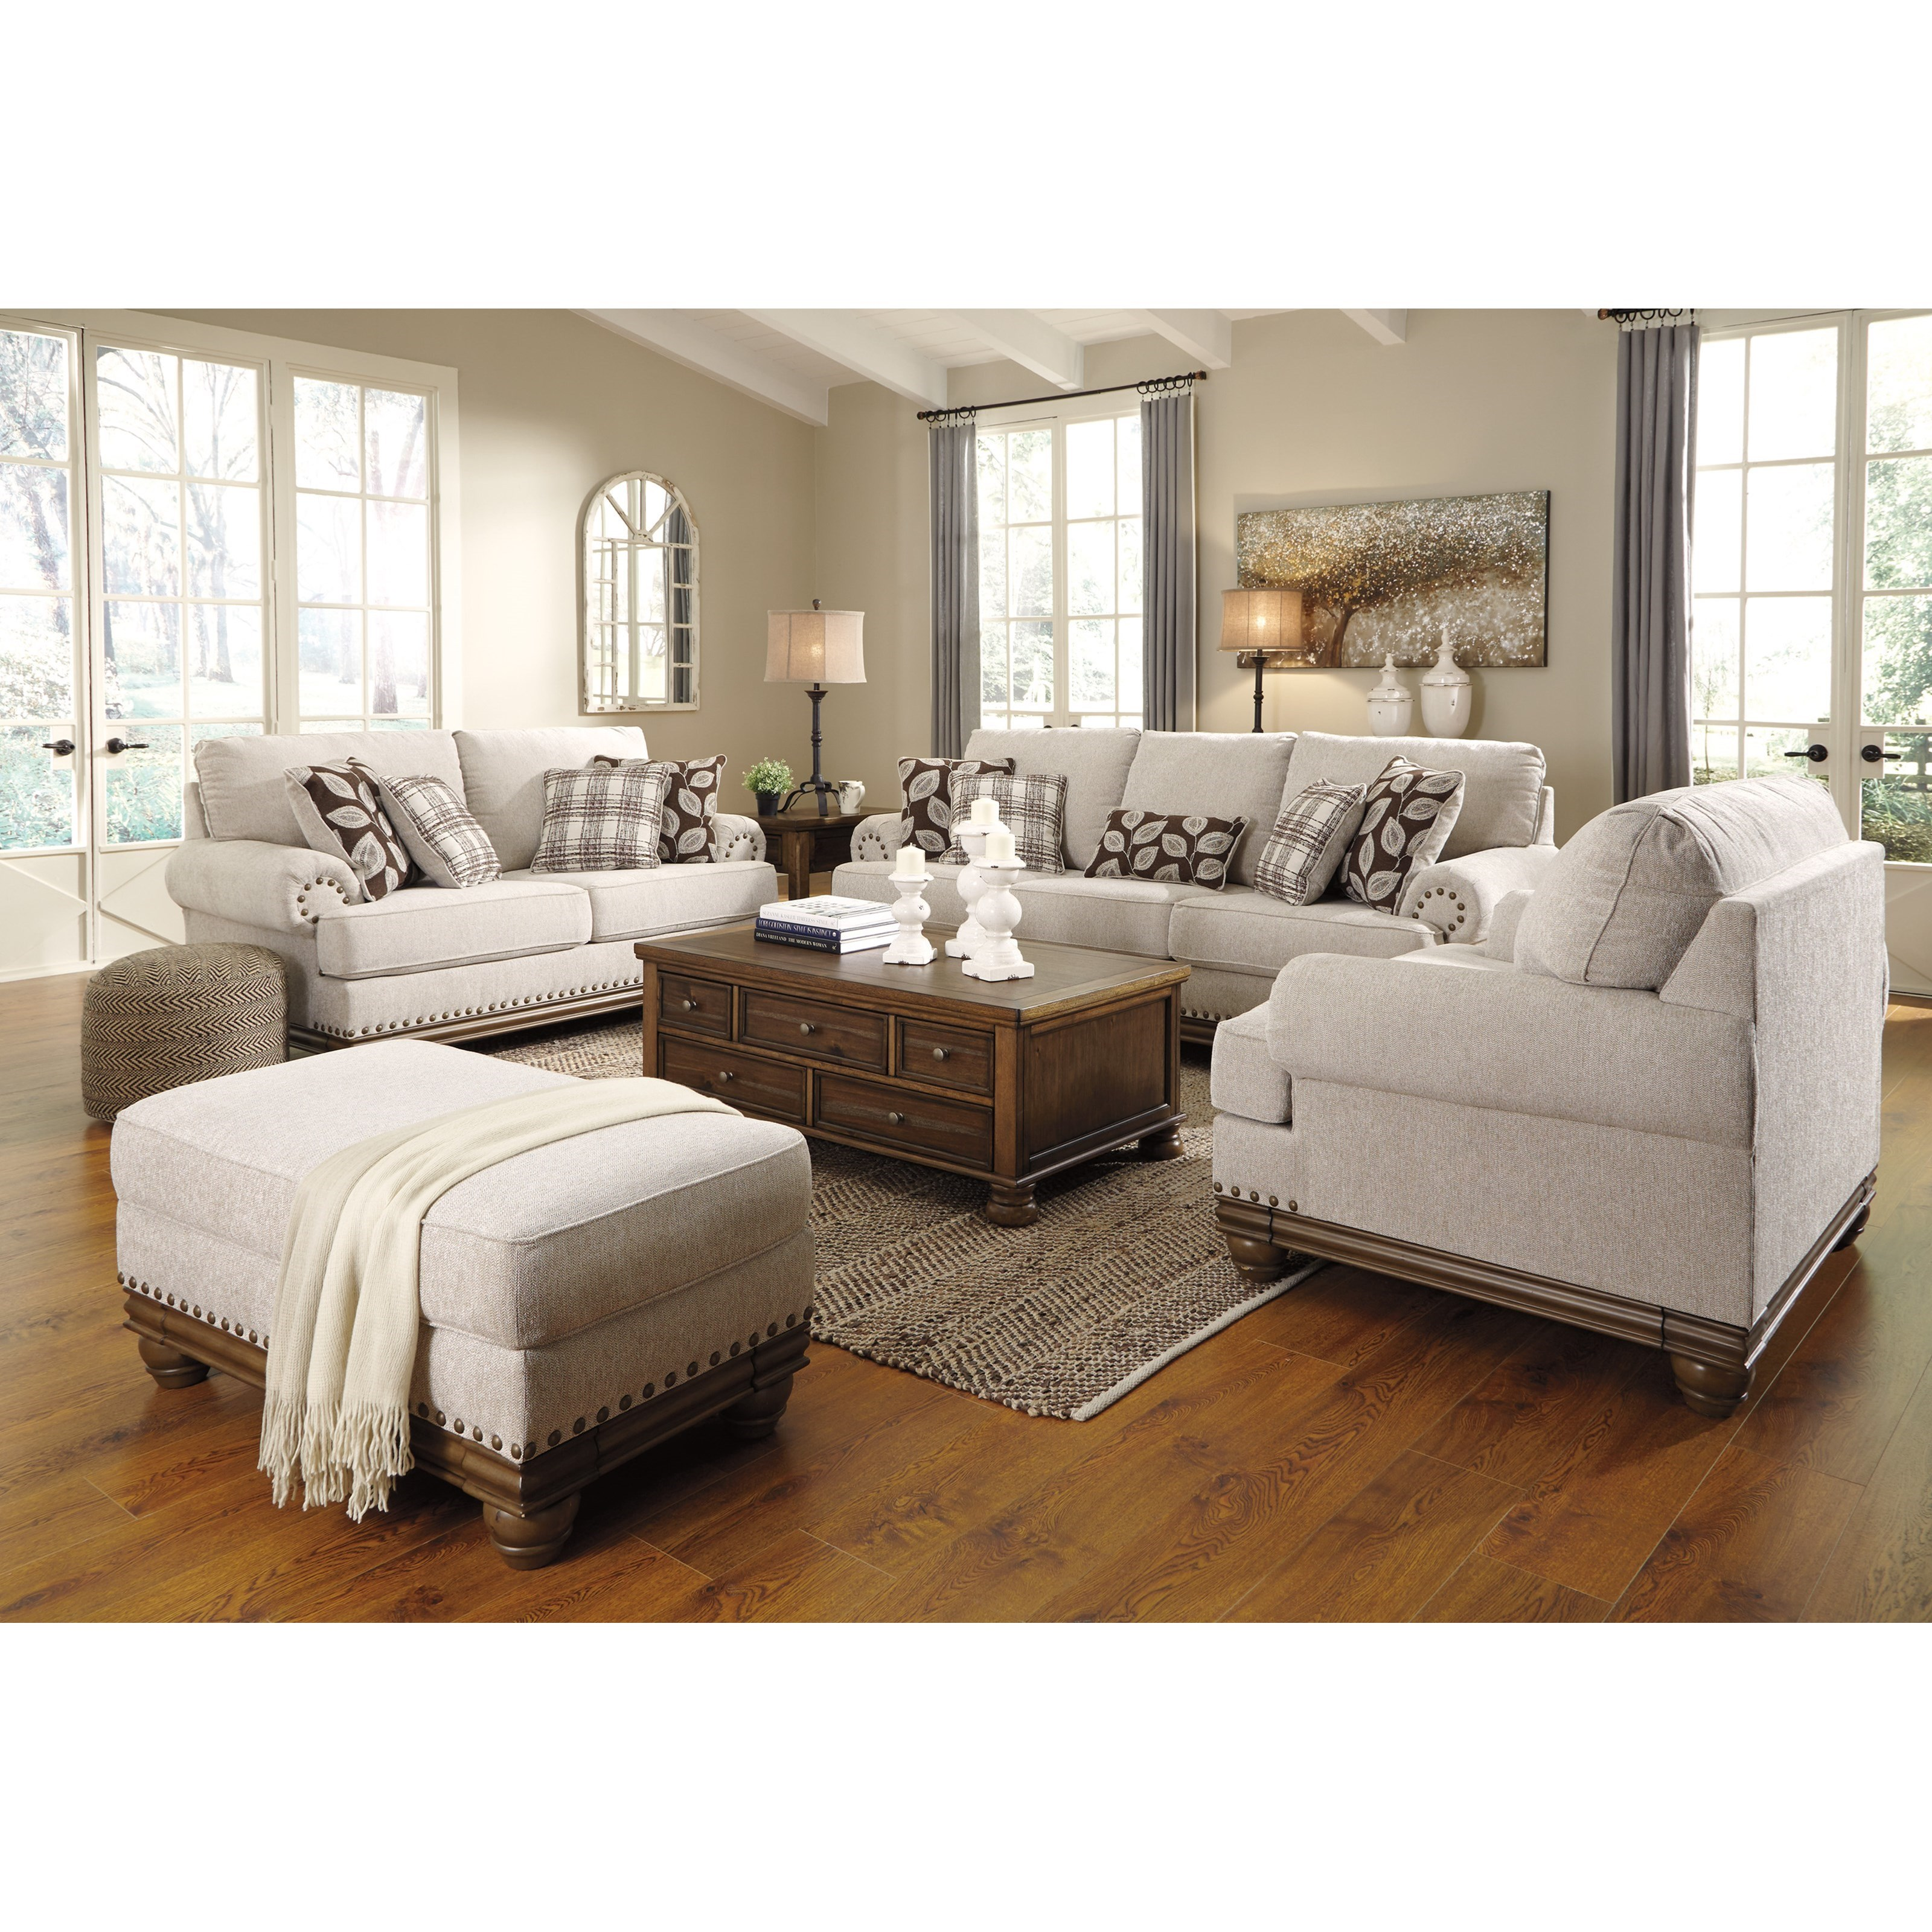 Signature design by ashley harleson stationary living room for Living room furniture groups